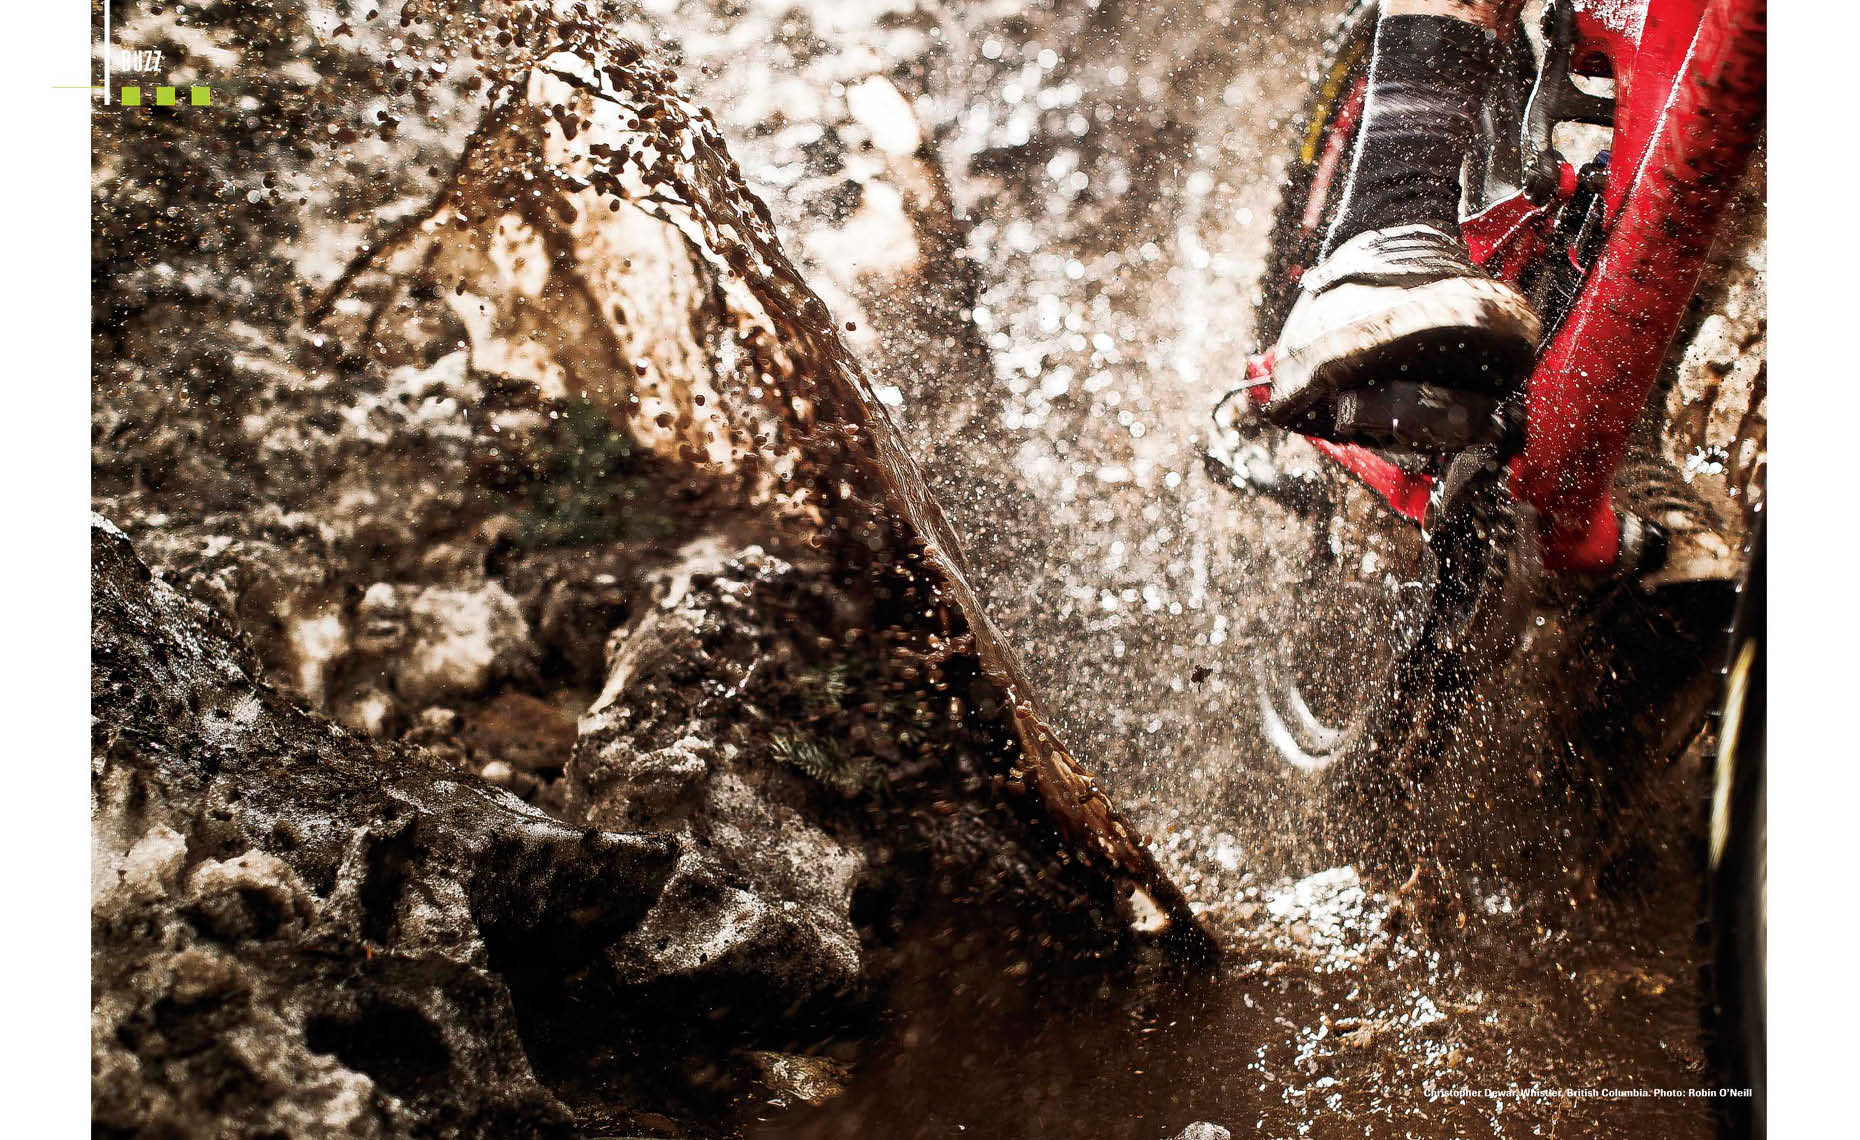 Puddle splash in bike magazine